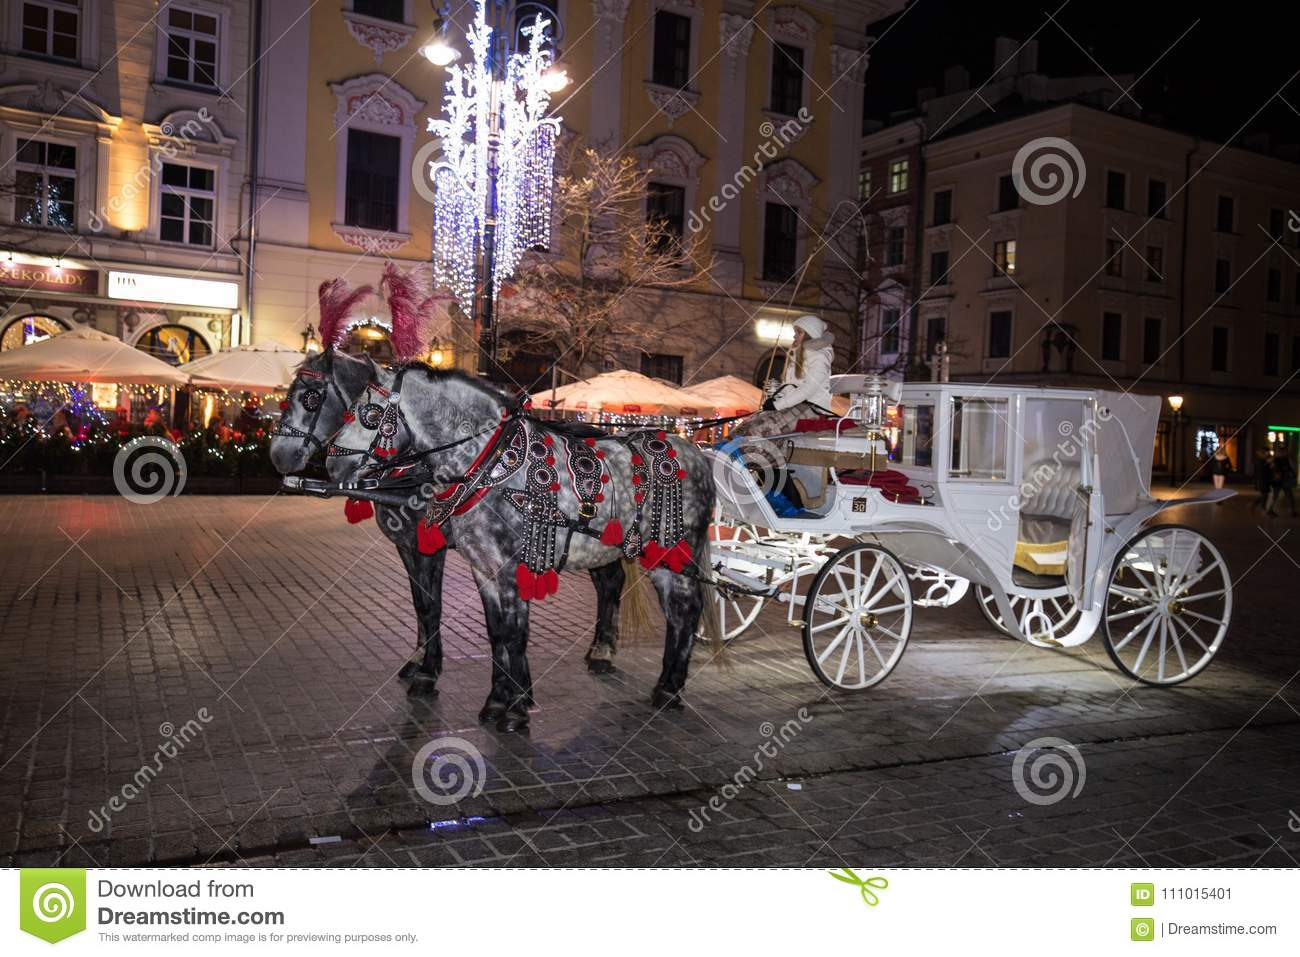 A Carriage With Horses Christmas Square Krakow Celebration Night Fair Feast Of Approaching Editorial Photo Image Of Horses Fair 111015401